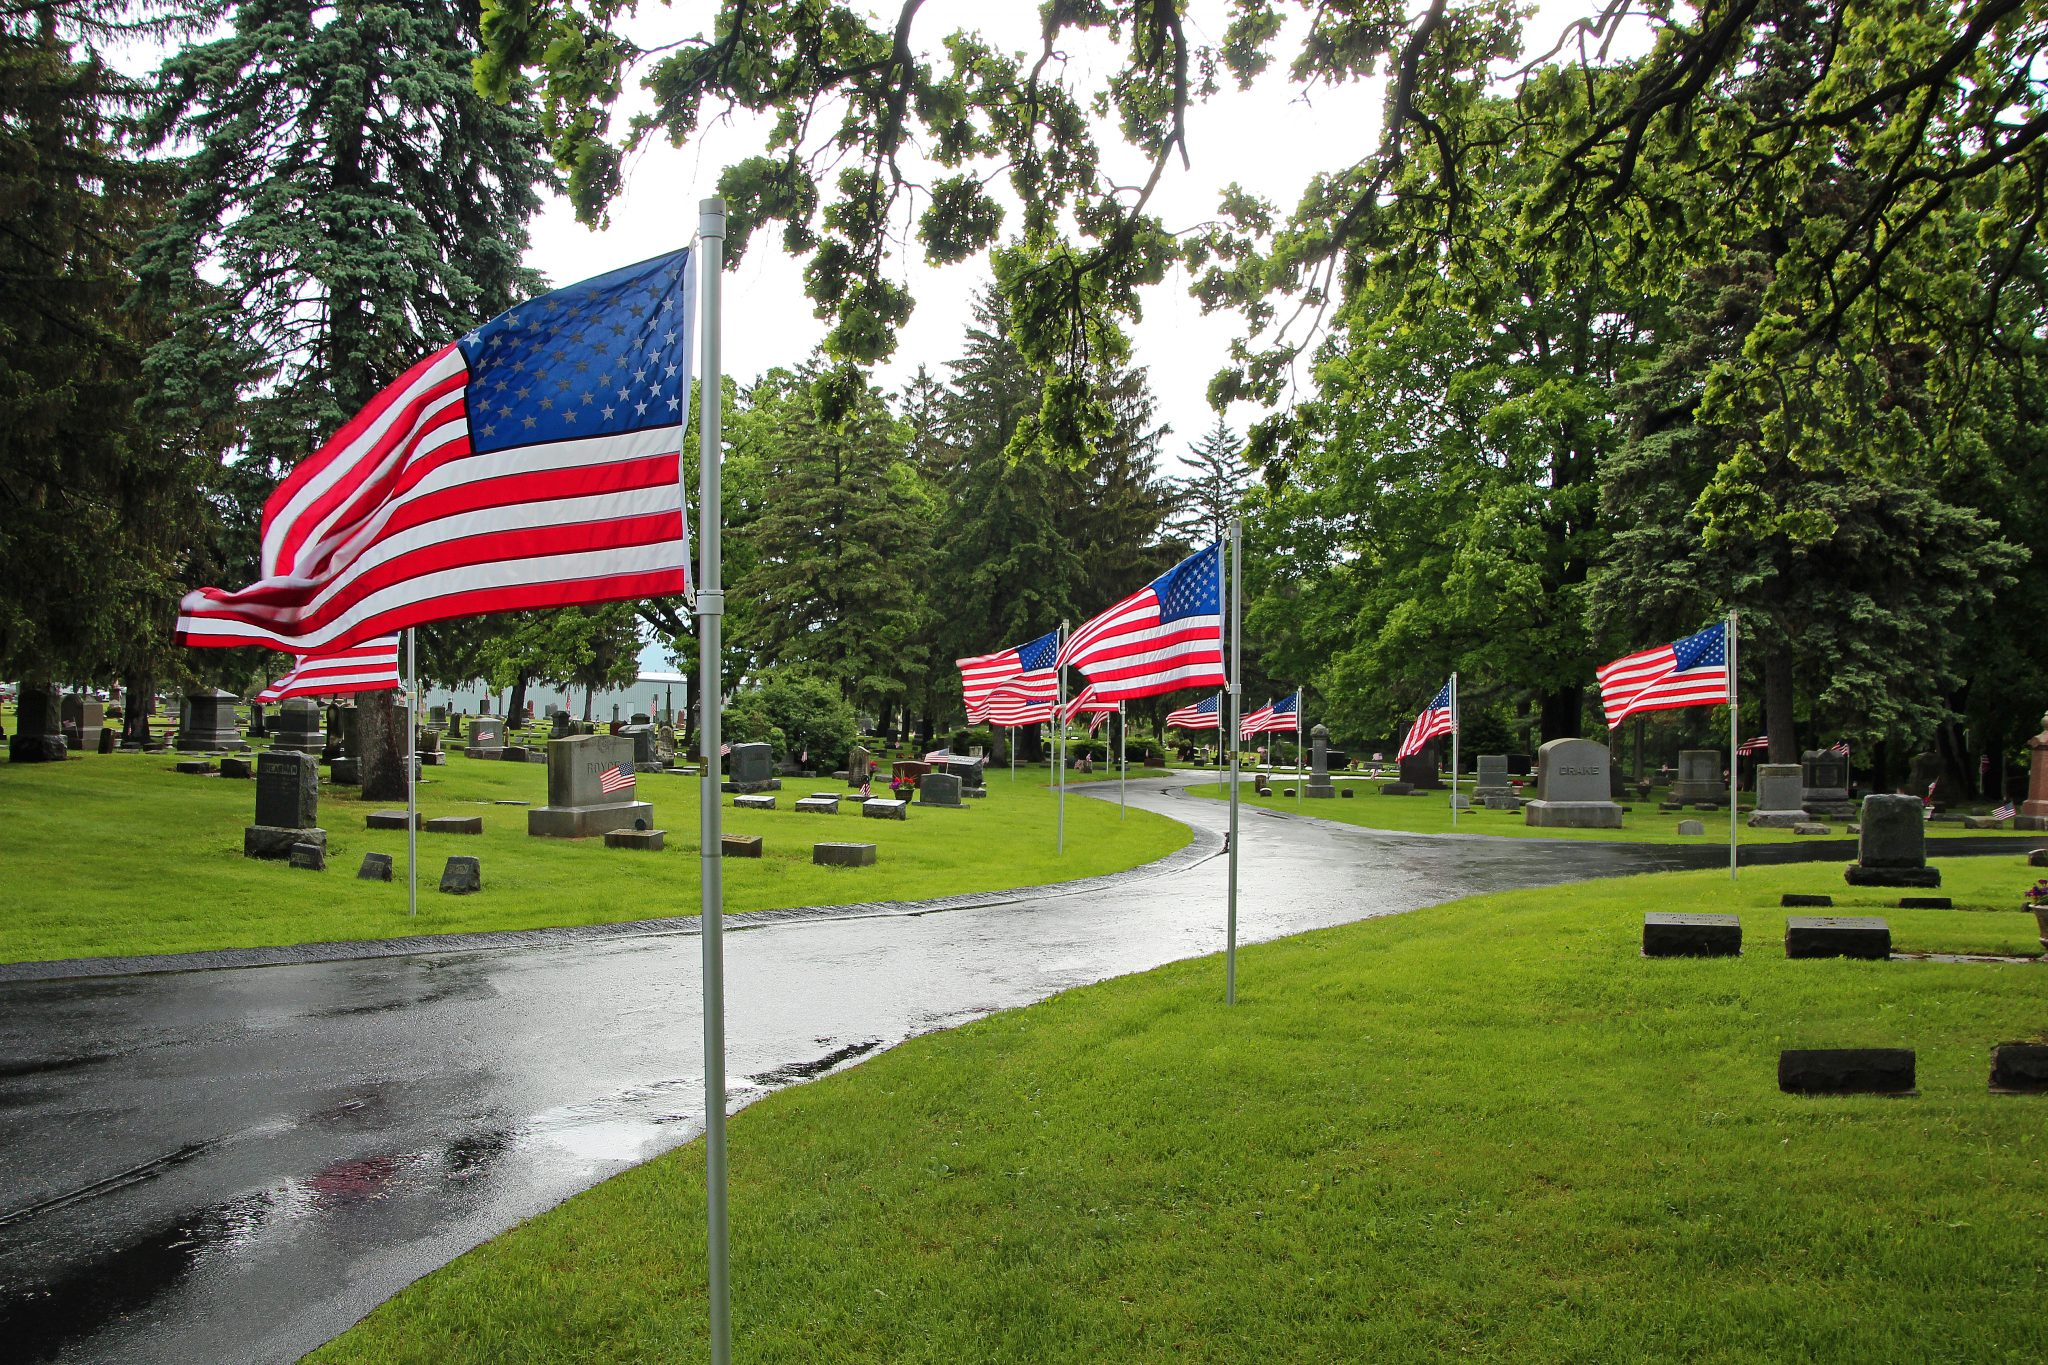 The Parade of Flags after rain